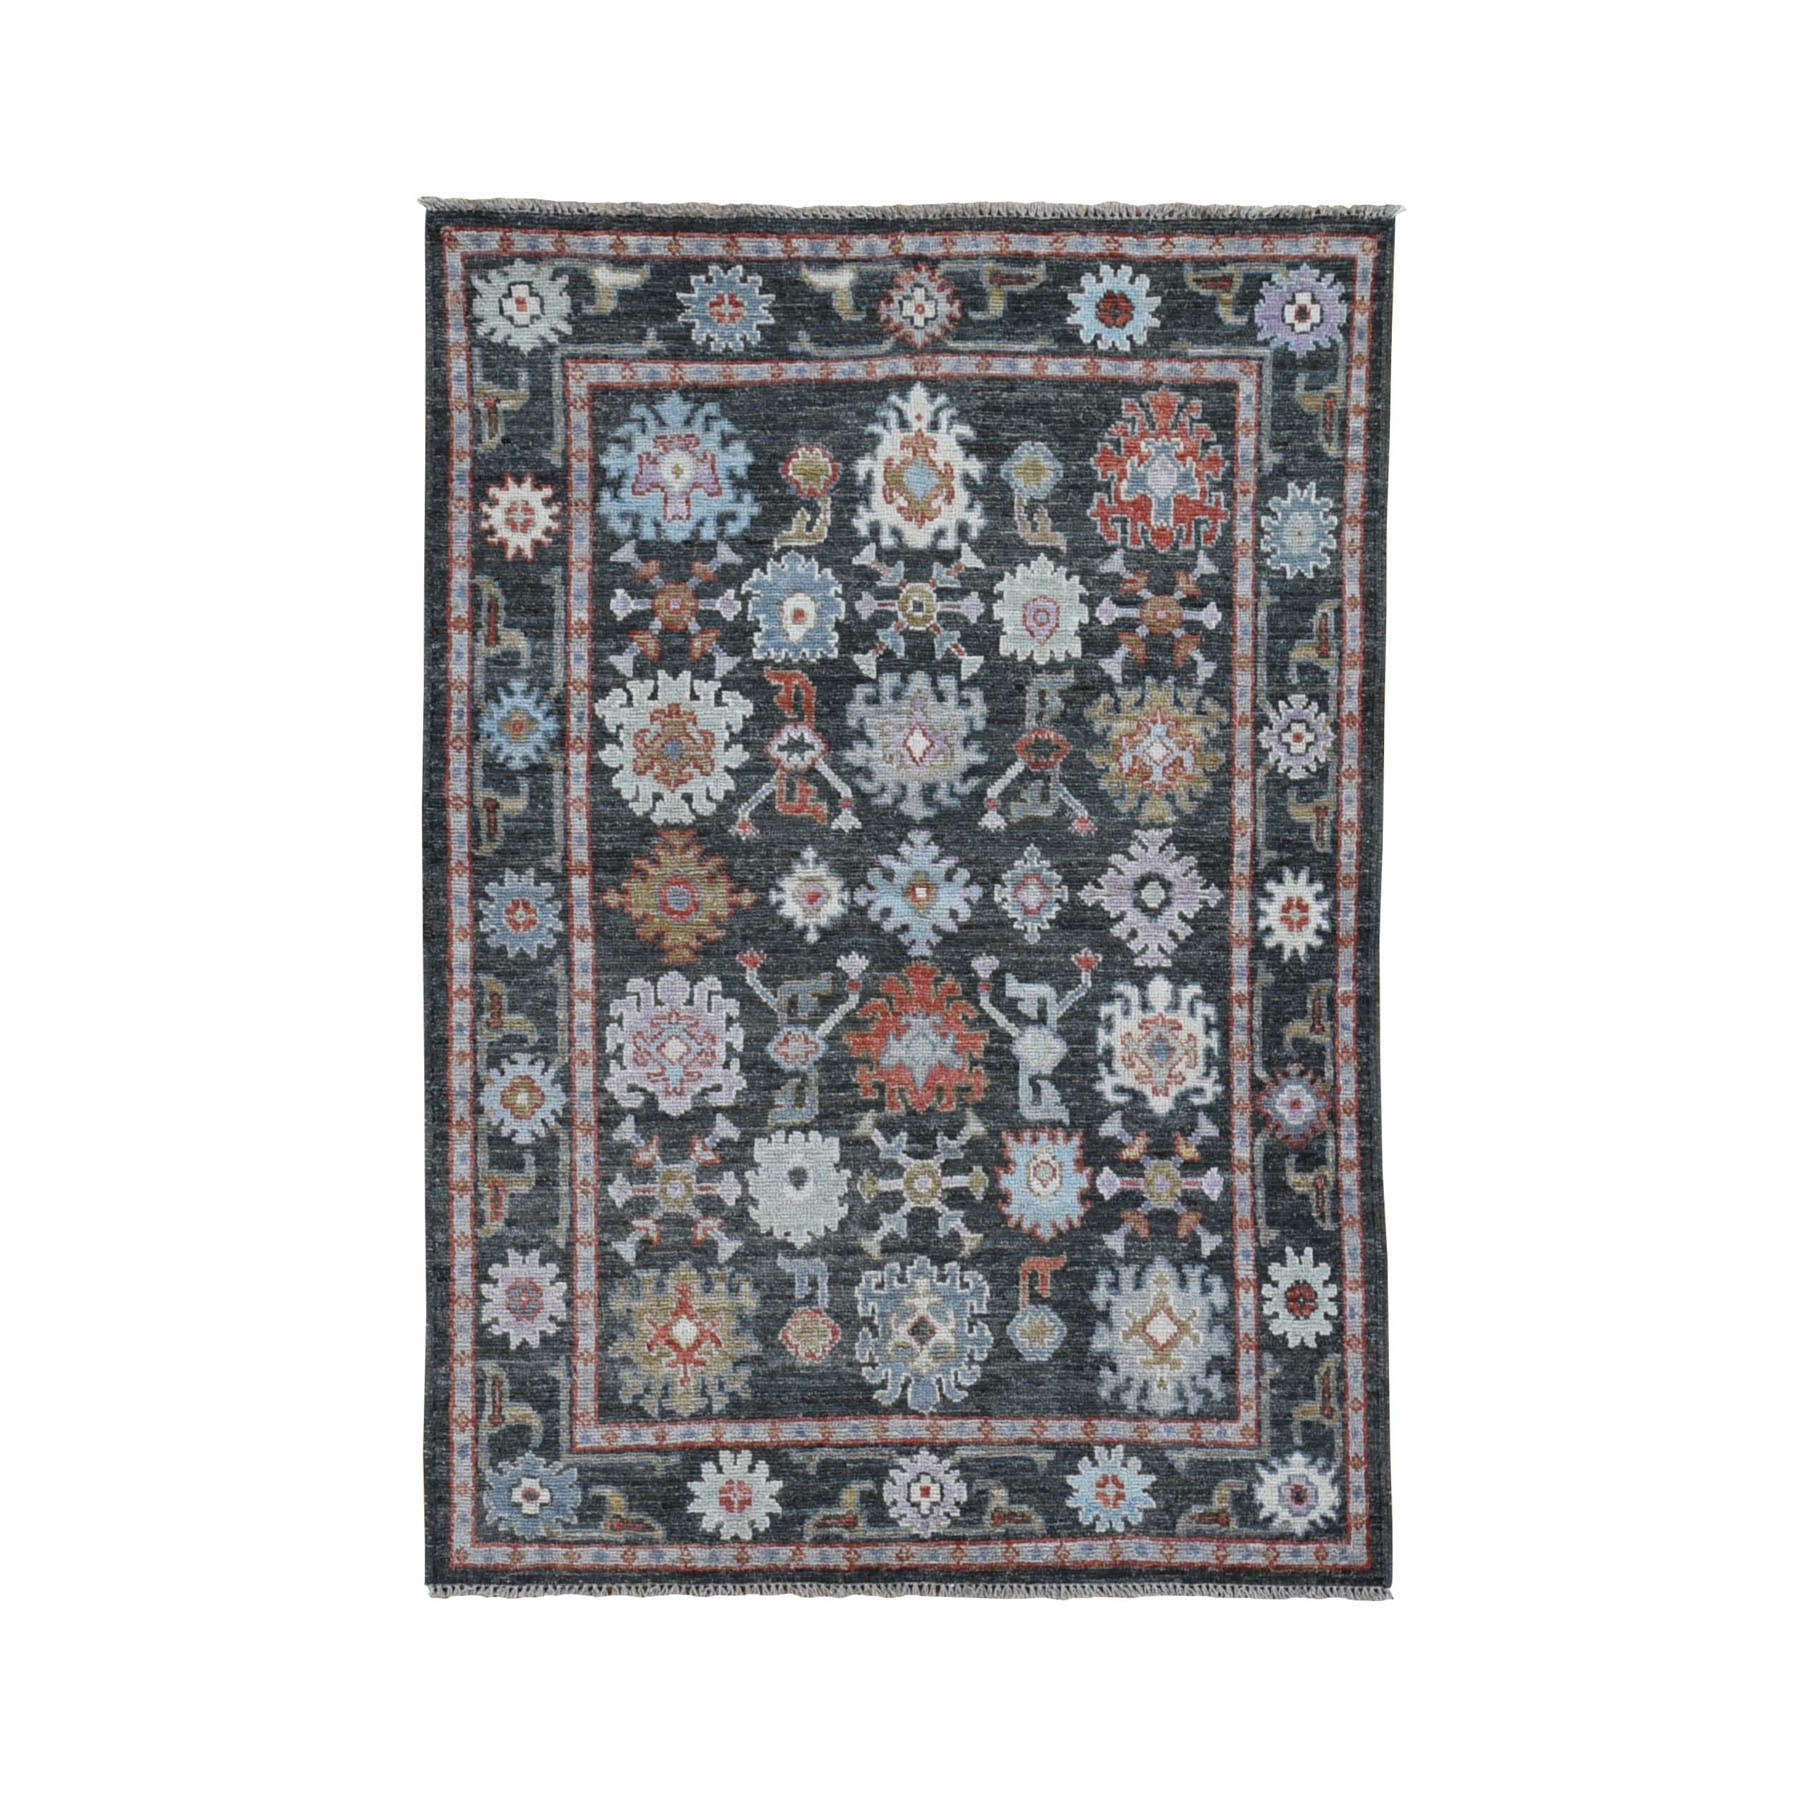 "4'x5'7"" Charcoal Black Angora Oushak With Soft Velvety Wool Hand Knotted Oriental Rug"